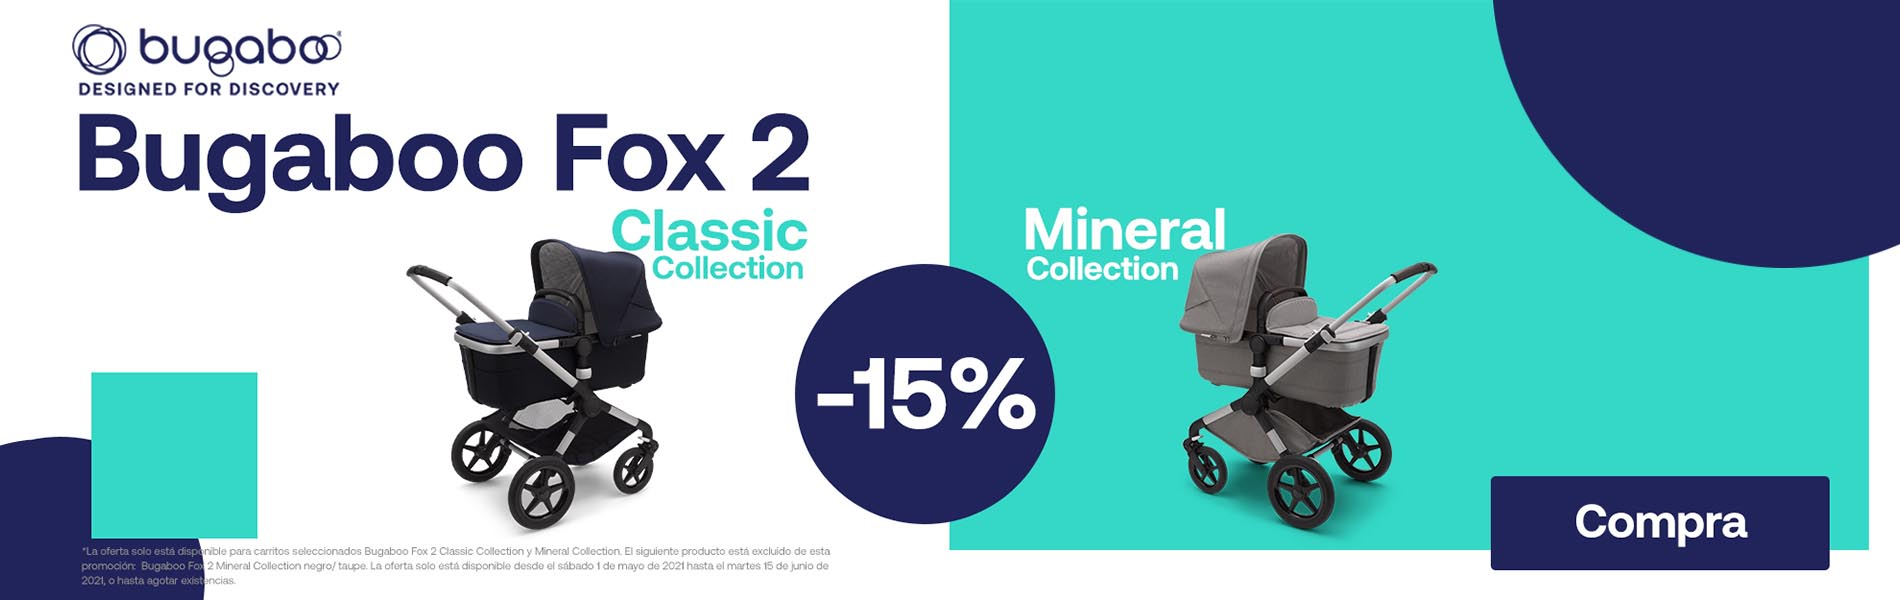 promocion oferta descuento 15% bugaboo fox 2 mineral collection y classic collection